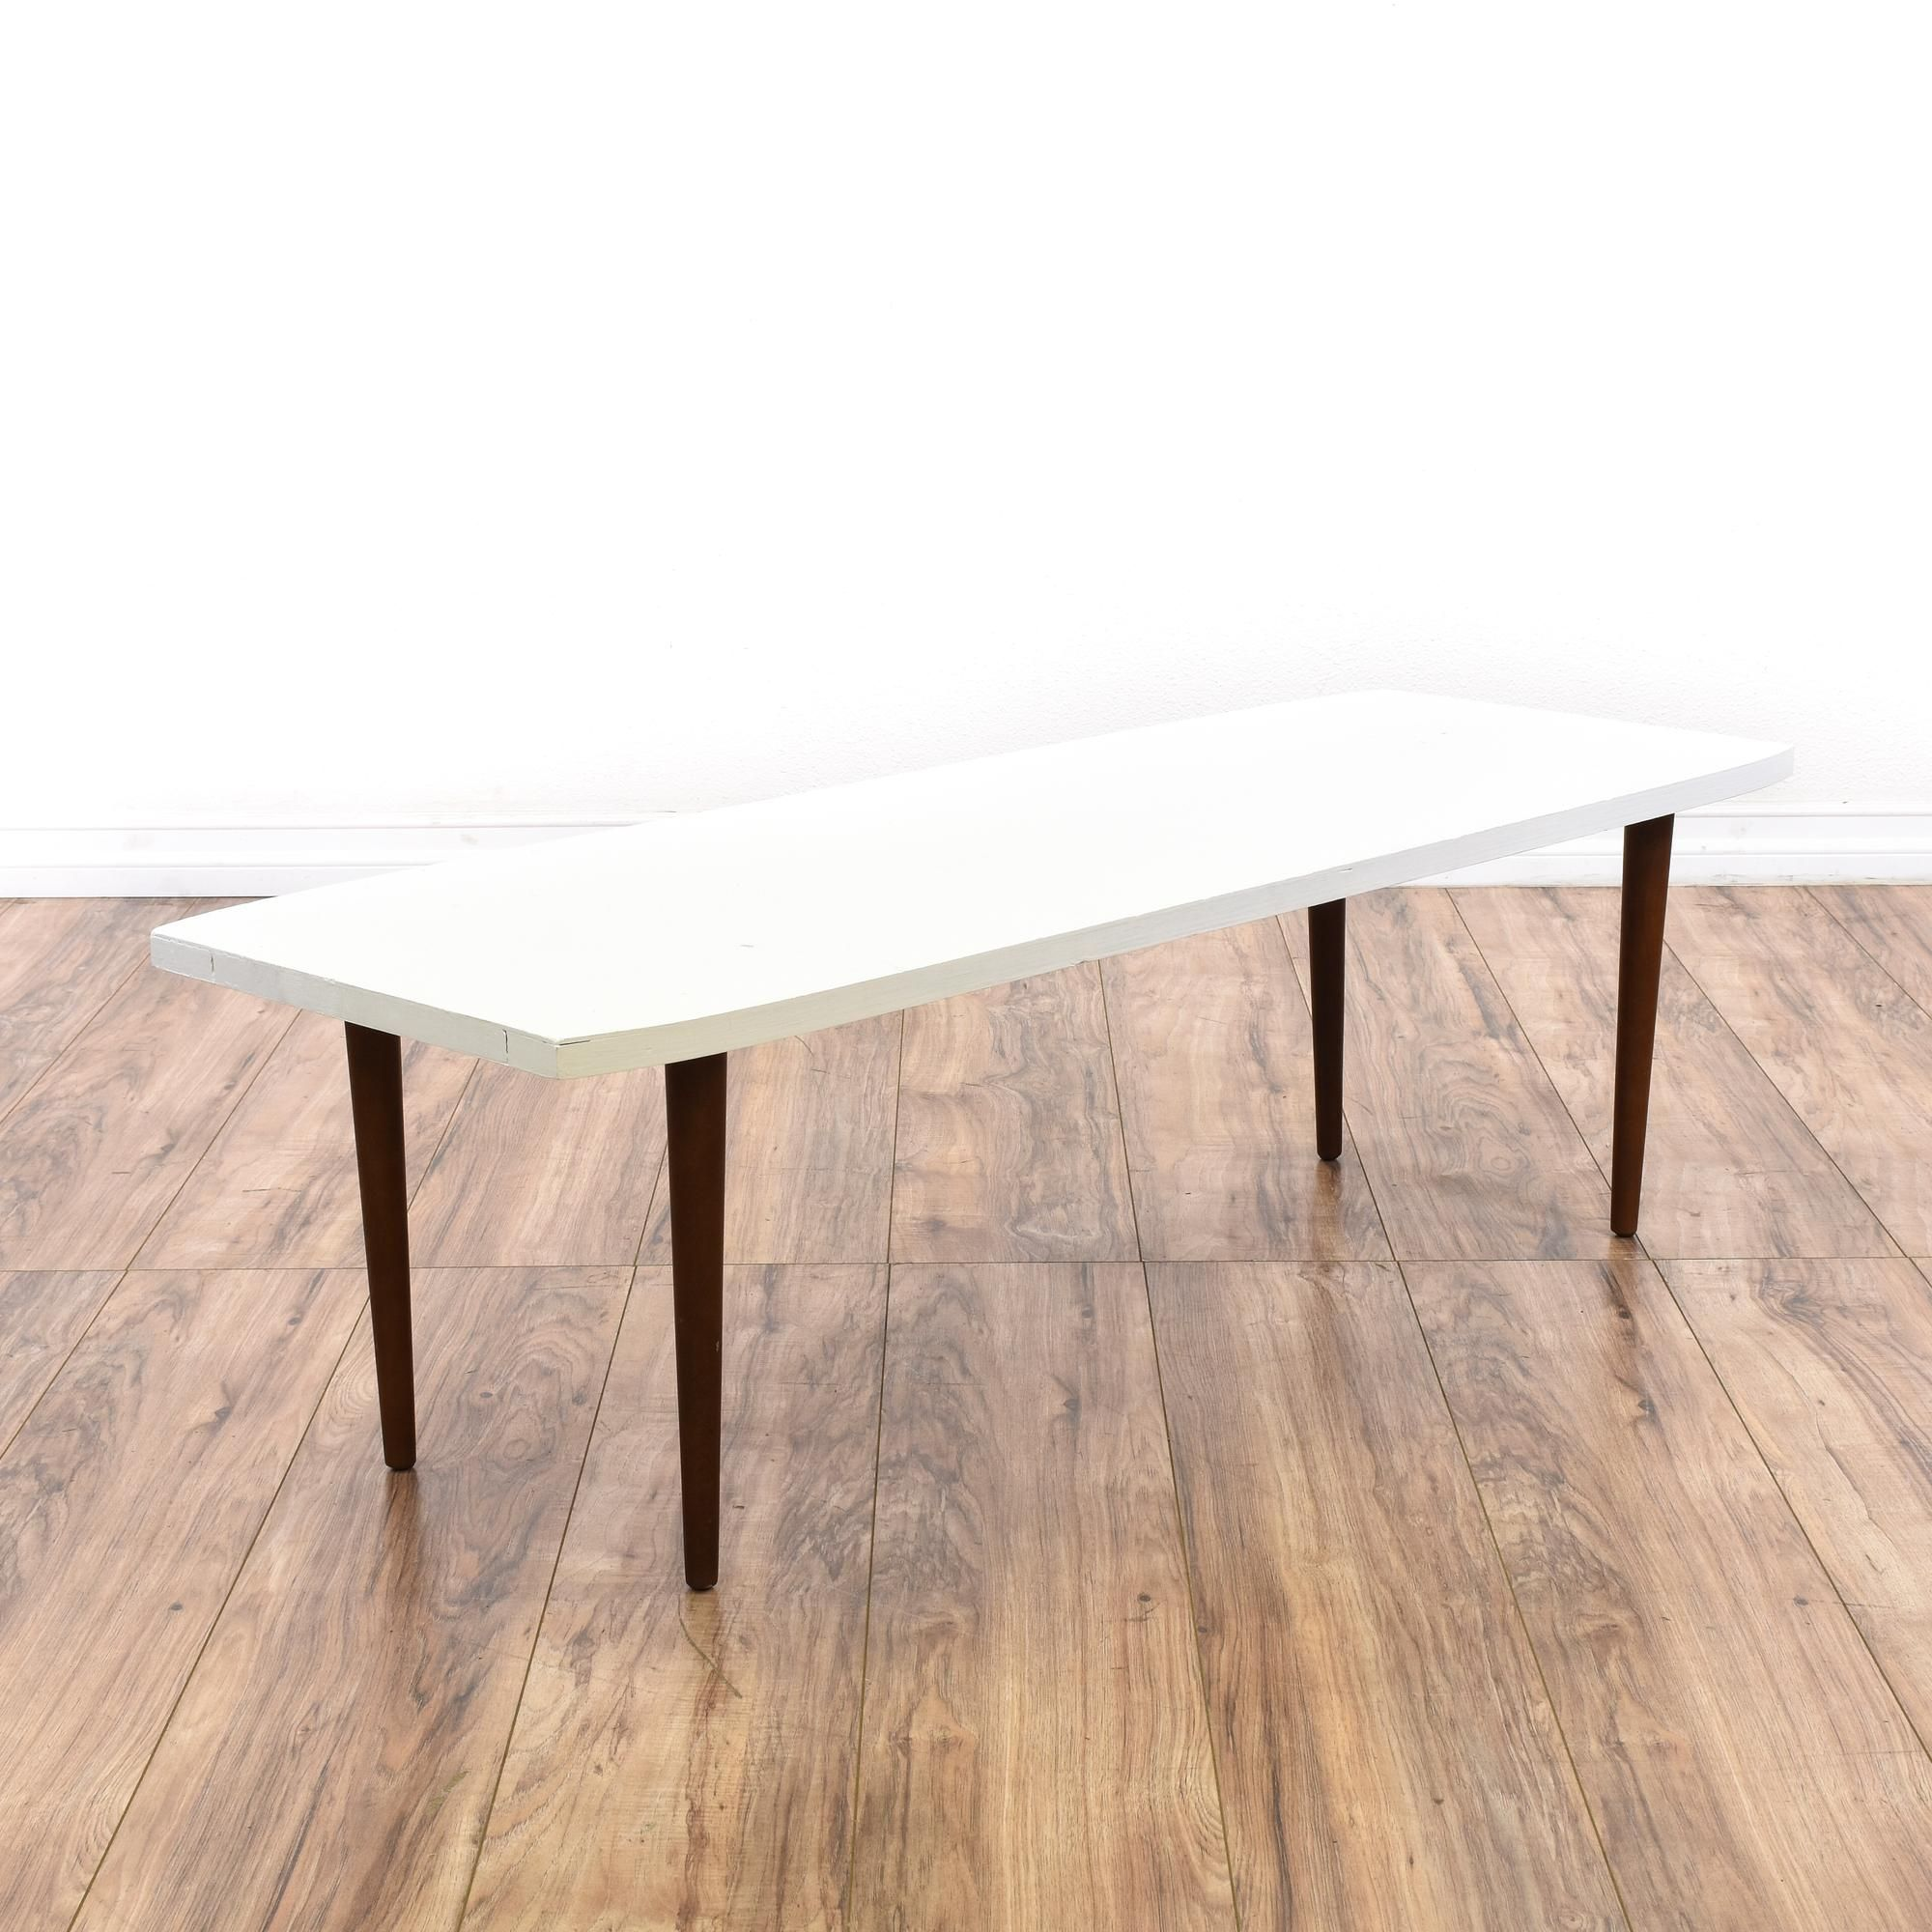 This Mid Century Modern Coffee Table Is Featured In A